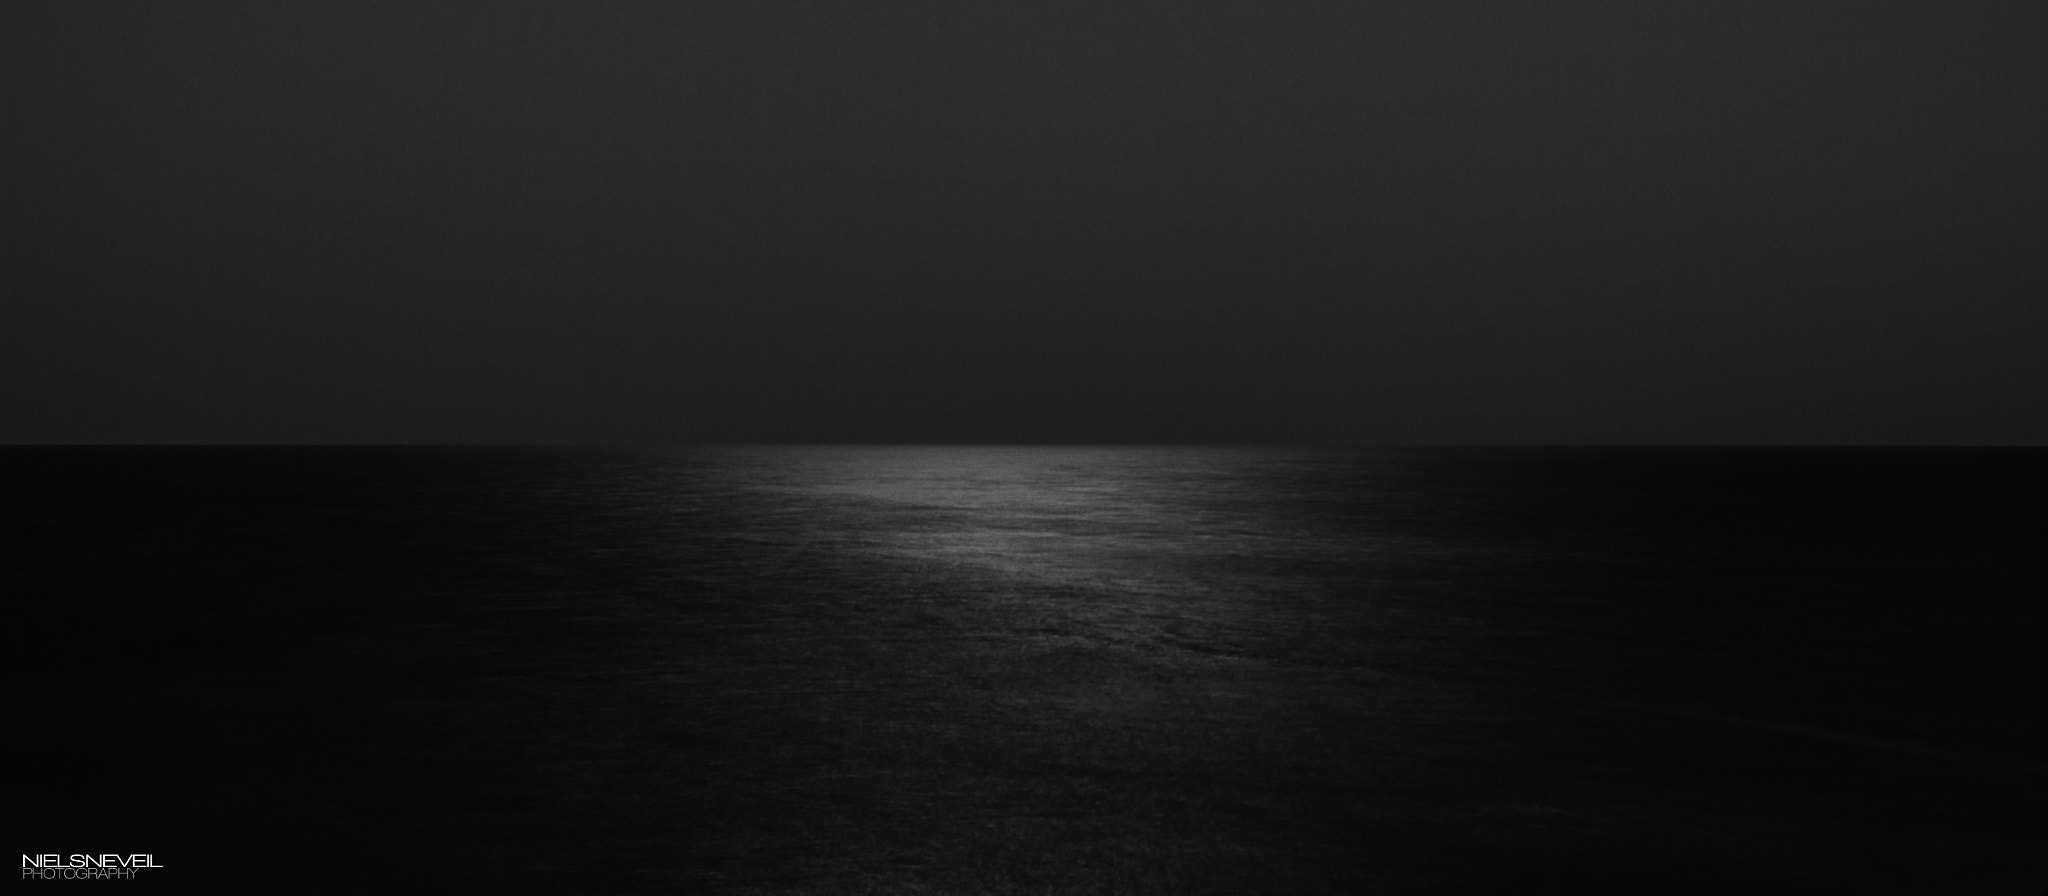 Photograph Ocean moonlight by Niels Neveil on 500px